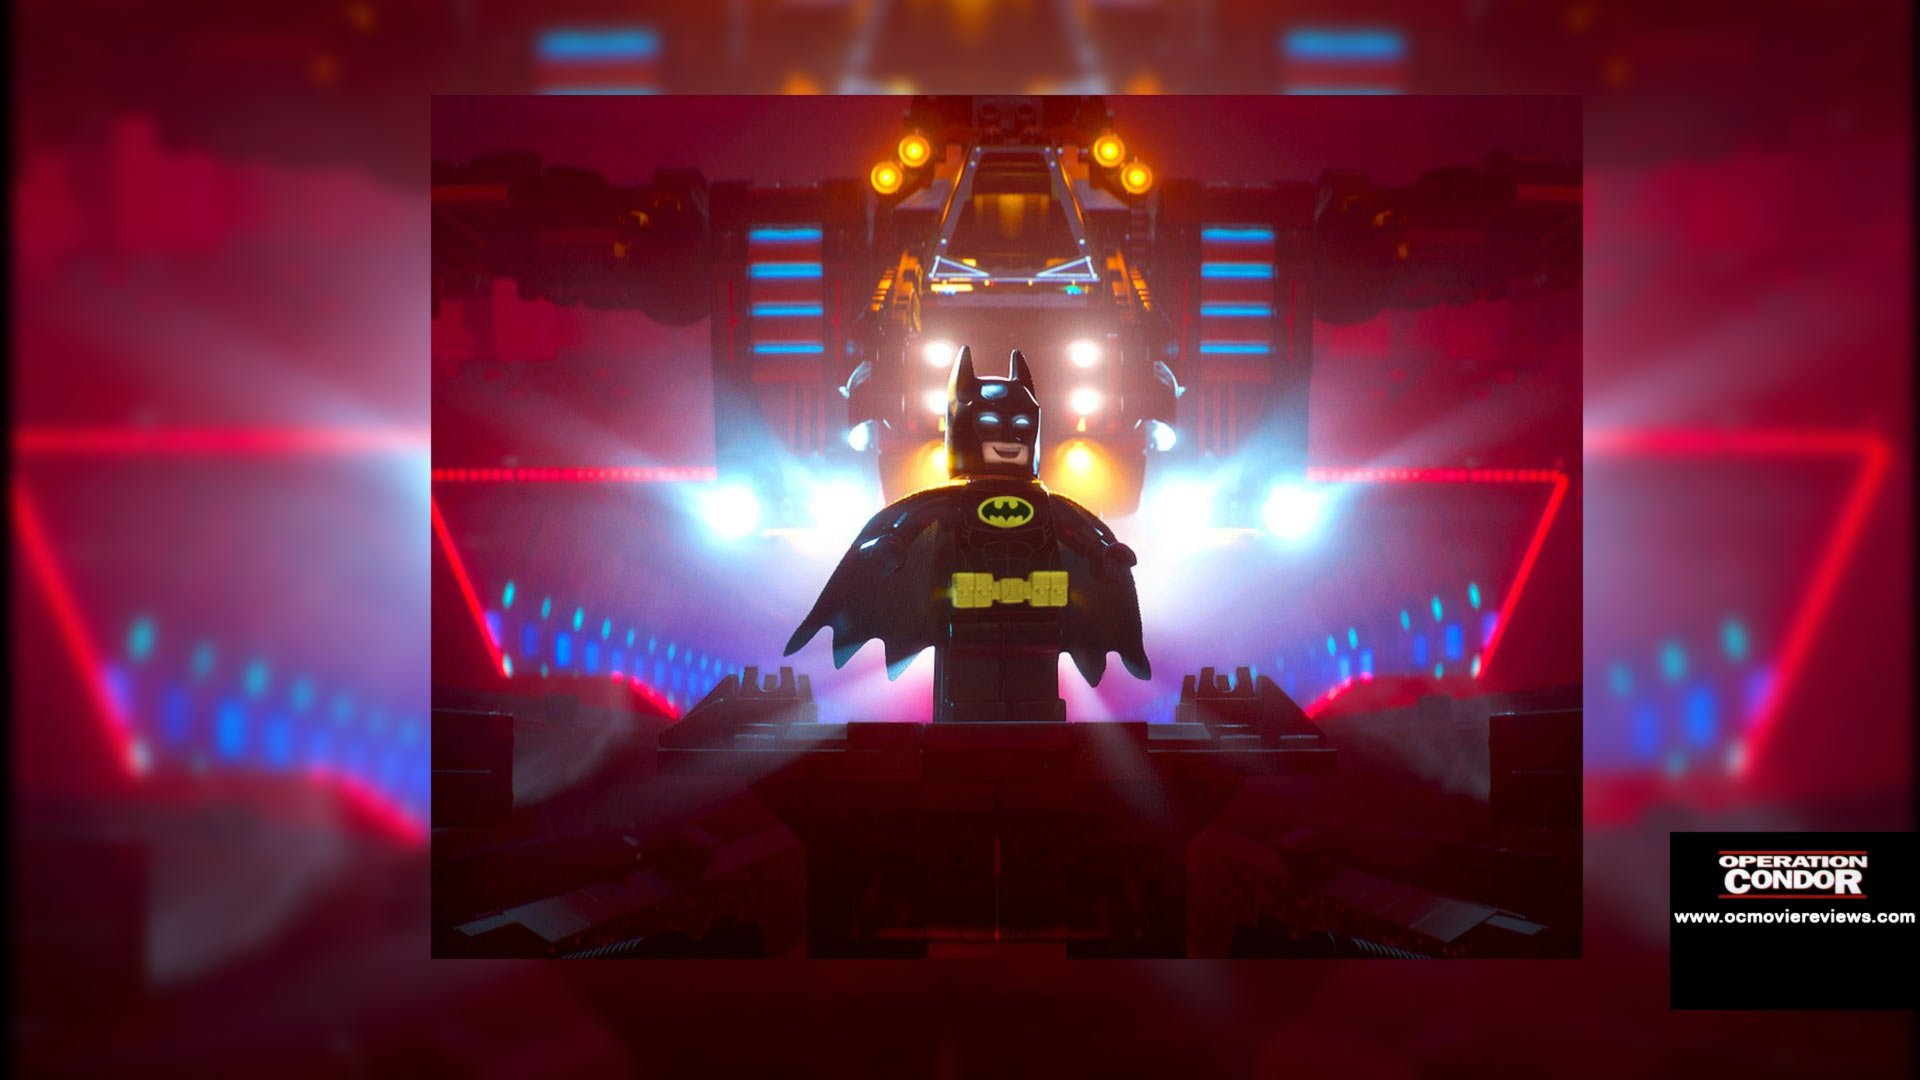 The Lego Batman Movie Review - OC Movie Reviews - Movie Reviews, Movie News, Documentary Reviews, Short Films, Short Film Reviews, Trailers, Movie Trailers, Interviews, film reviews, film news, hollywood, indie films, documentaries